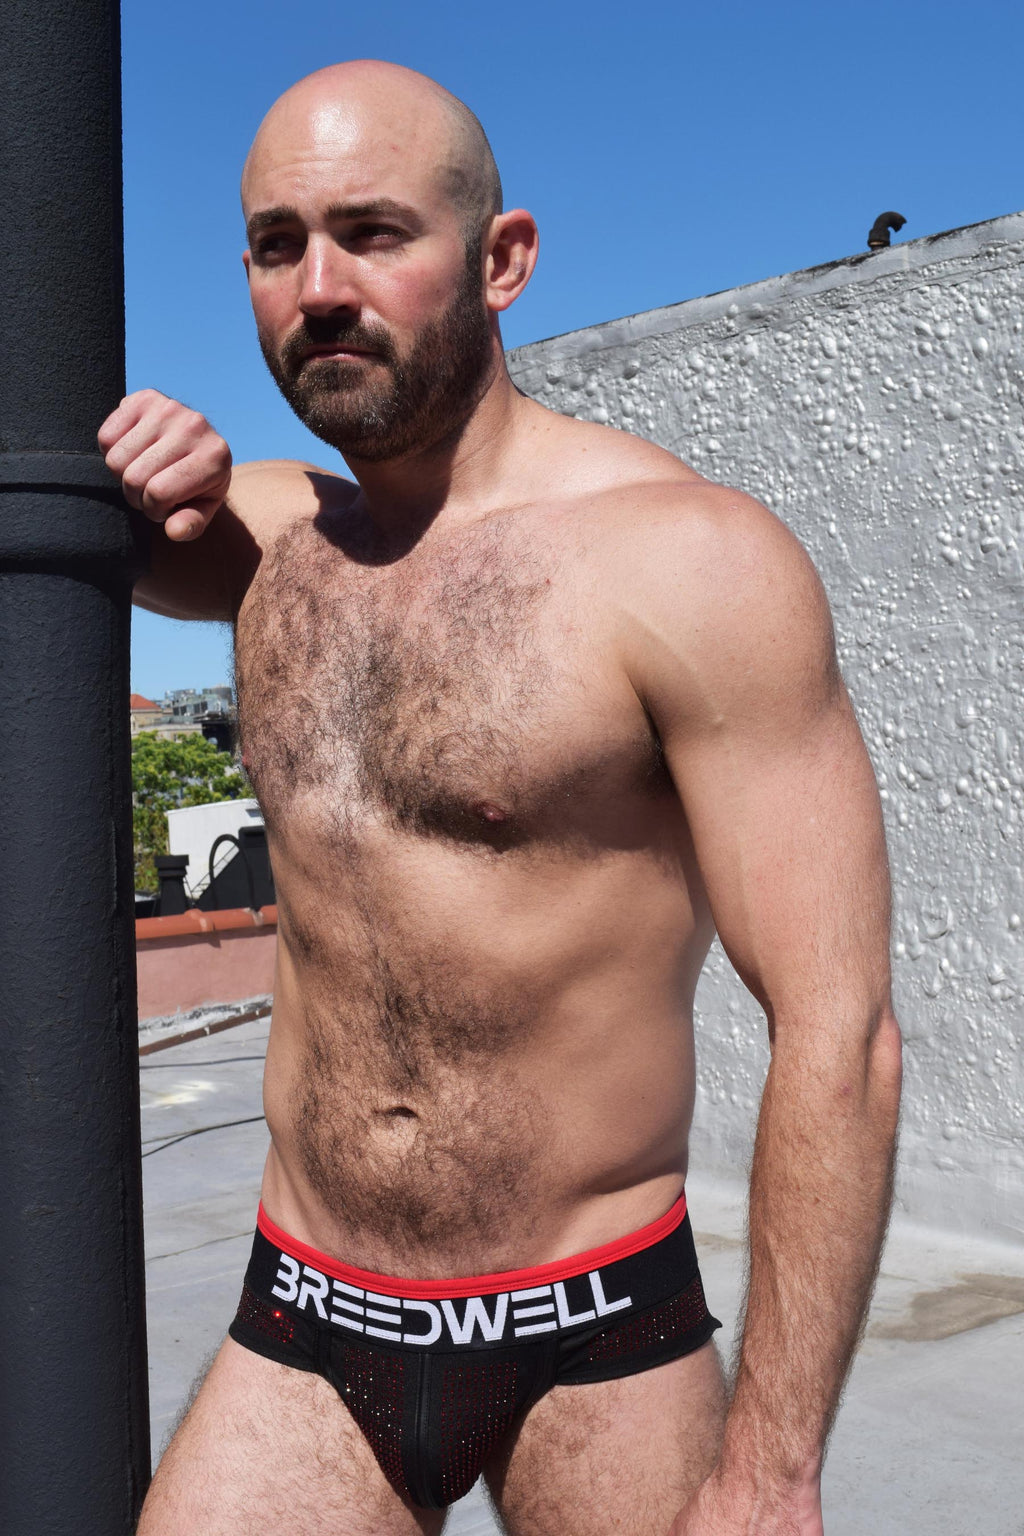 RED STUD JOCKS